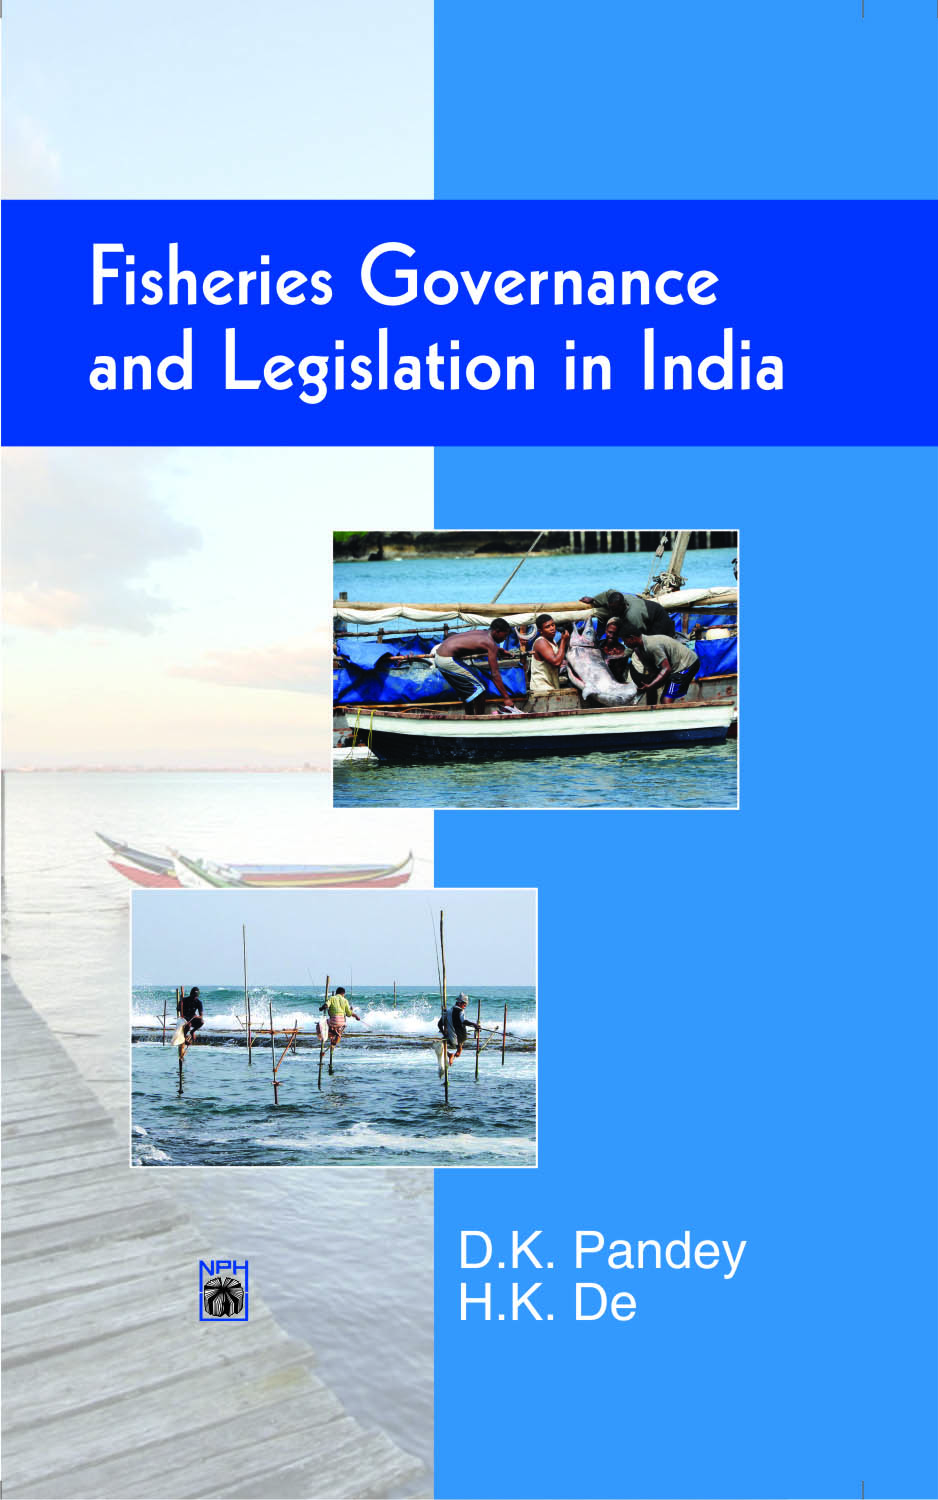 Fisheries Governance & Legislation in India